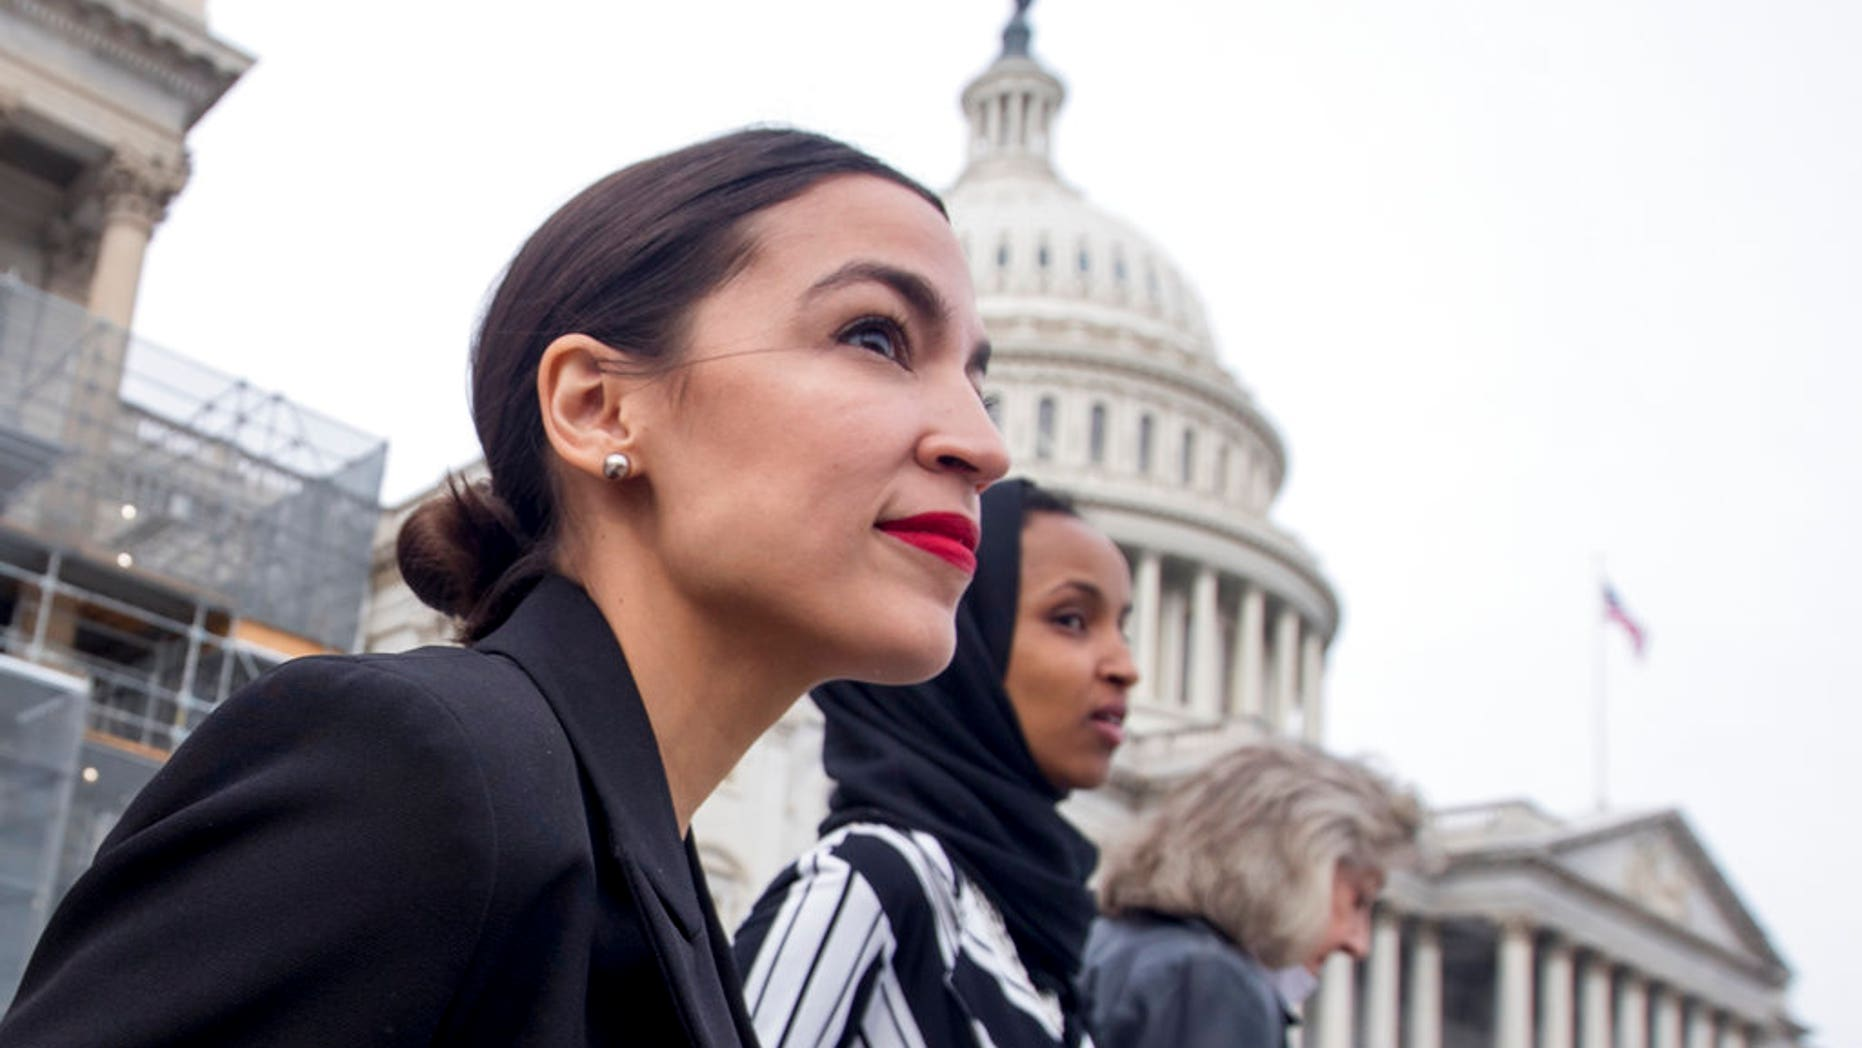 Ocasio-Cortez Campaign Fined For Denying Employees Proper Benefits